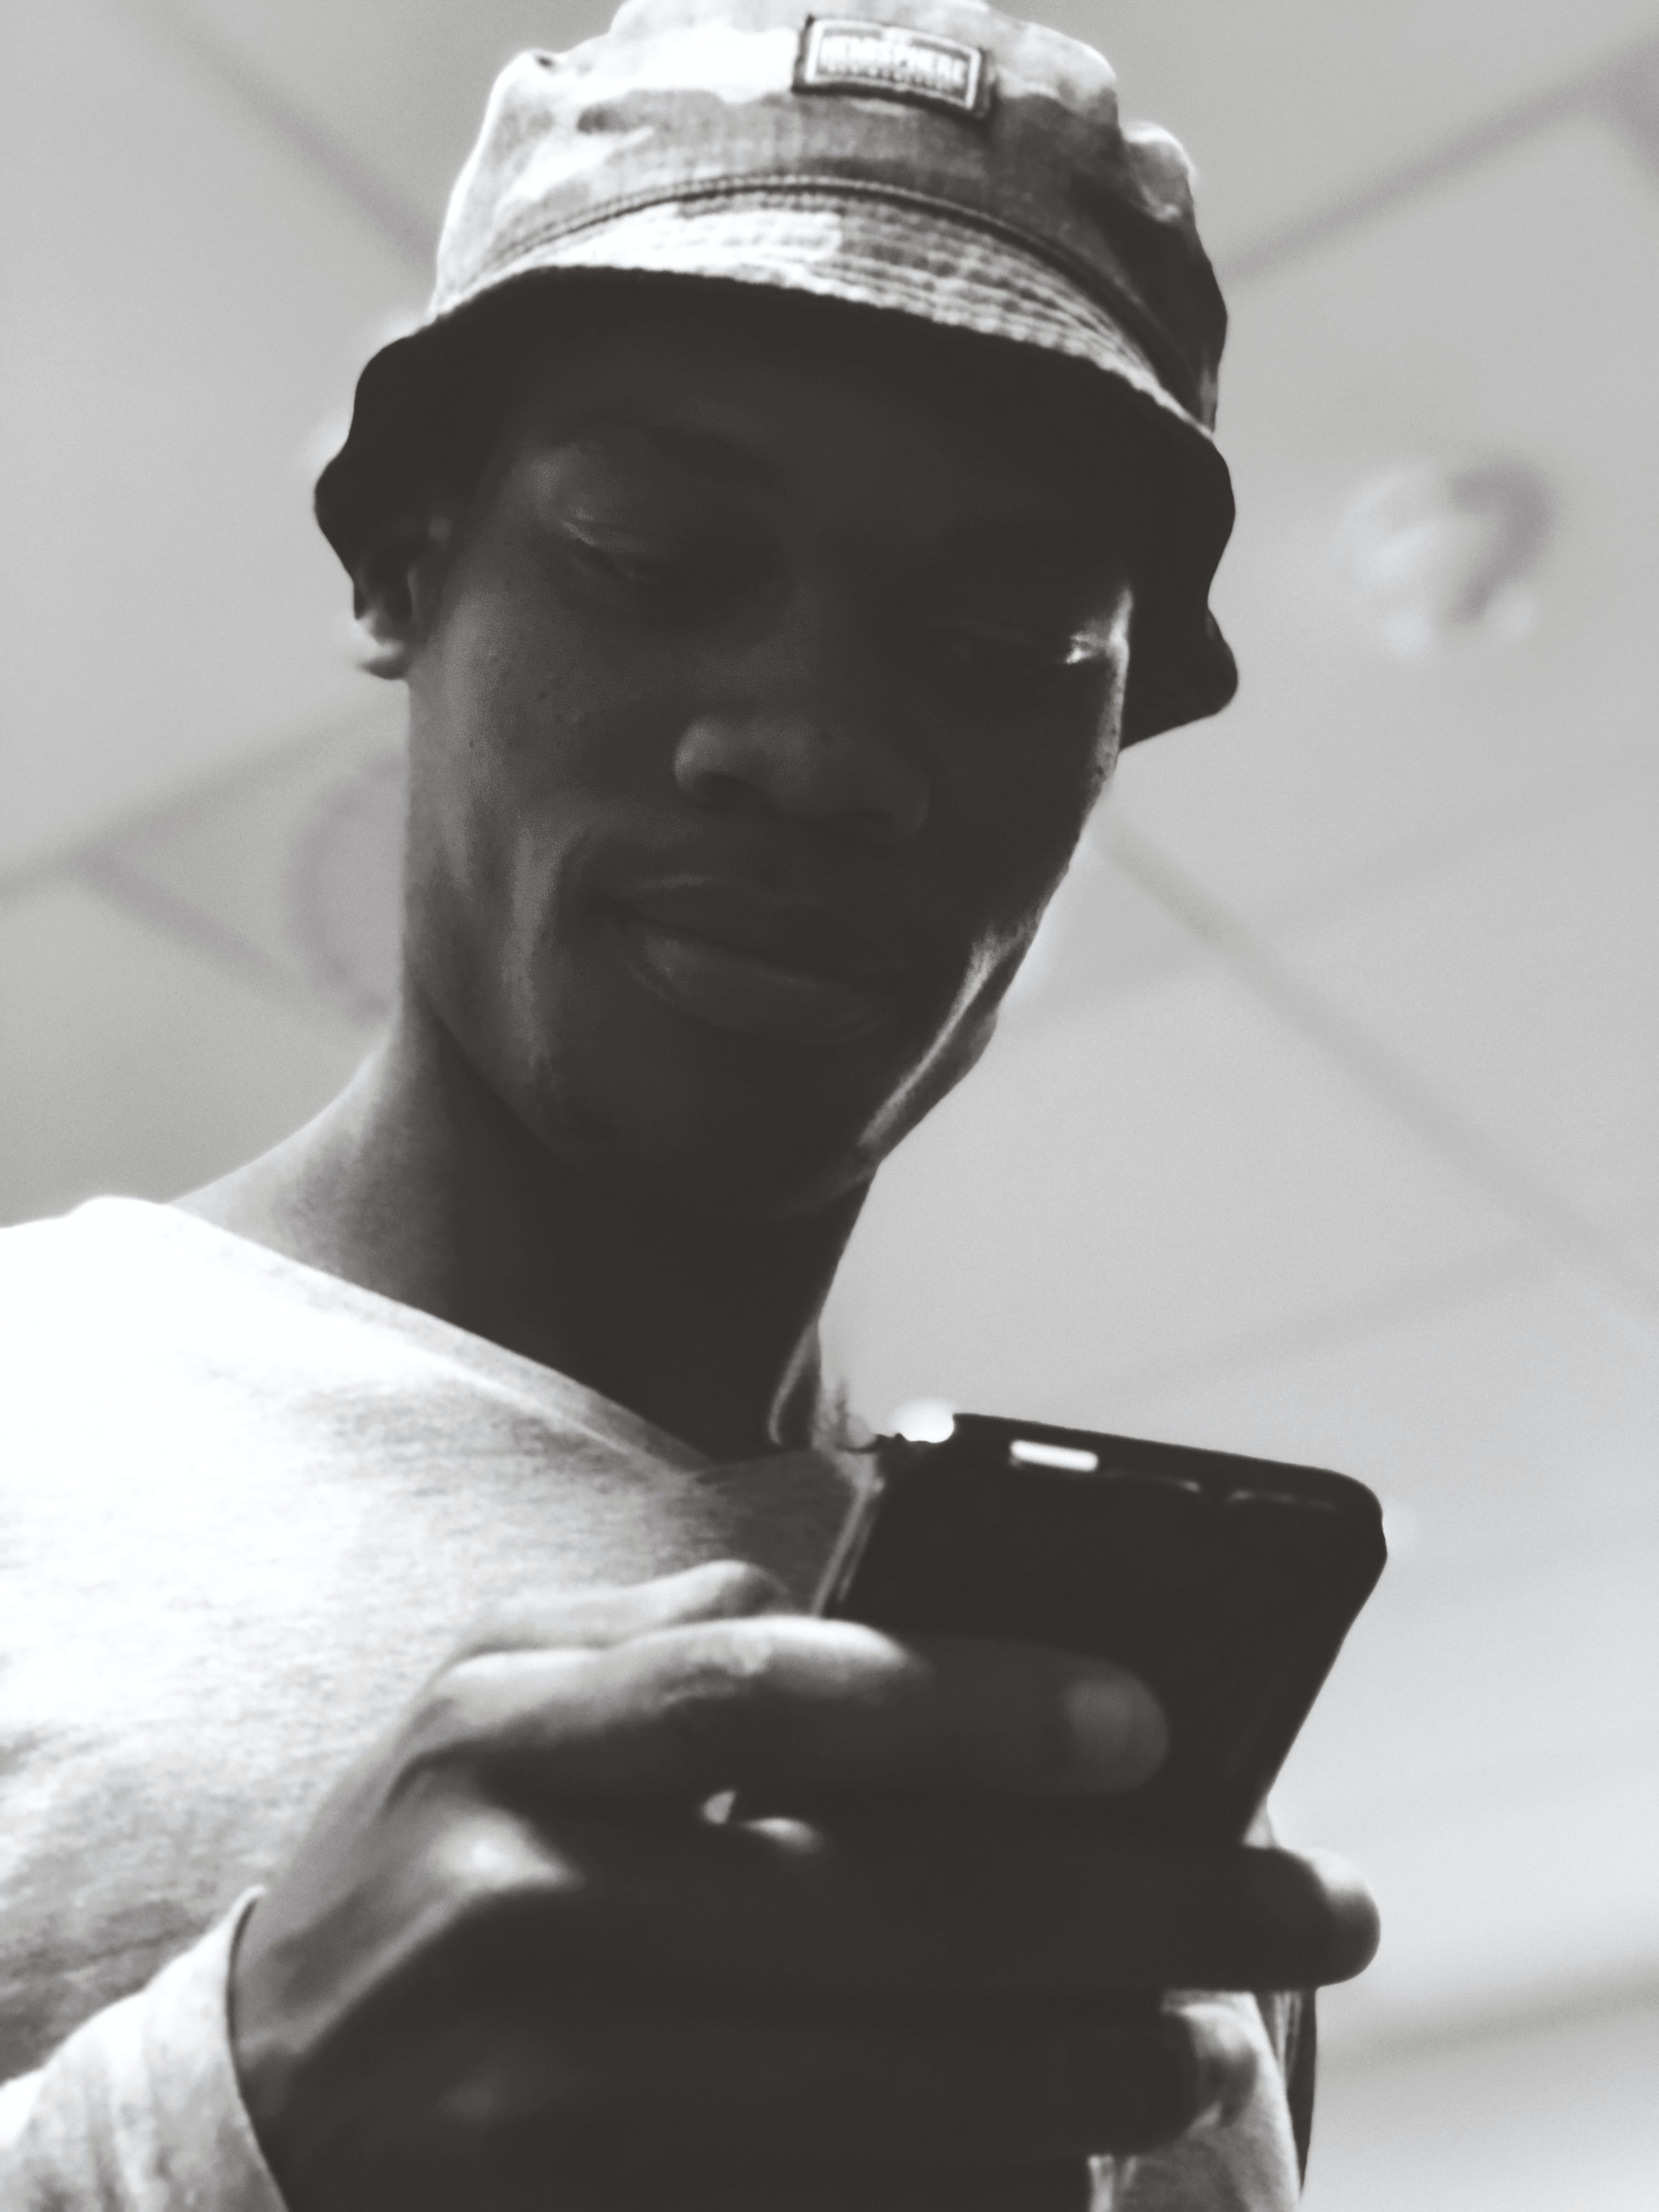 Man in Bucket Hat Holding Black Smartphone